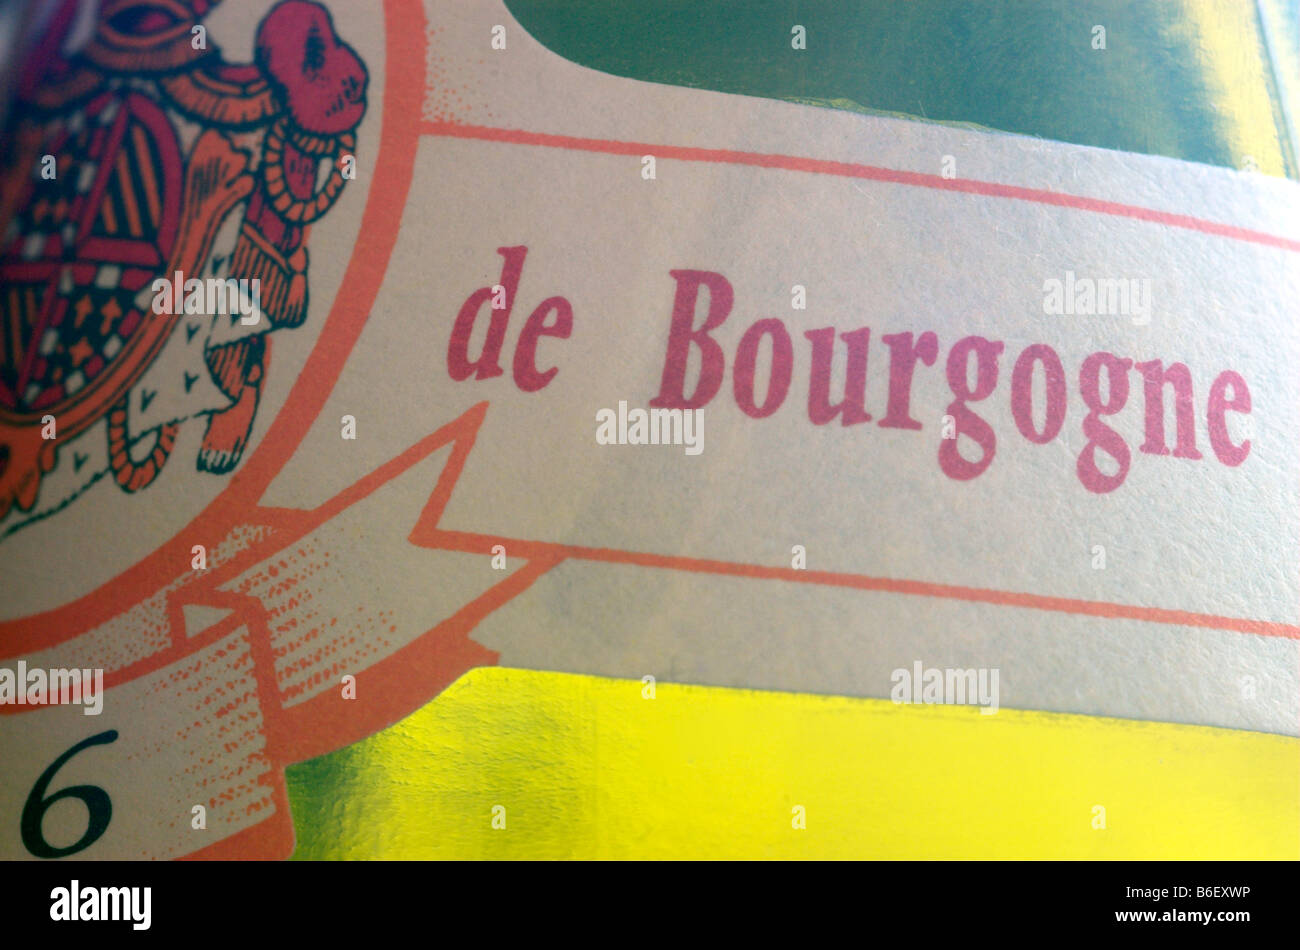 Detail of a Bourgogne wine label - Stock Image